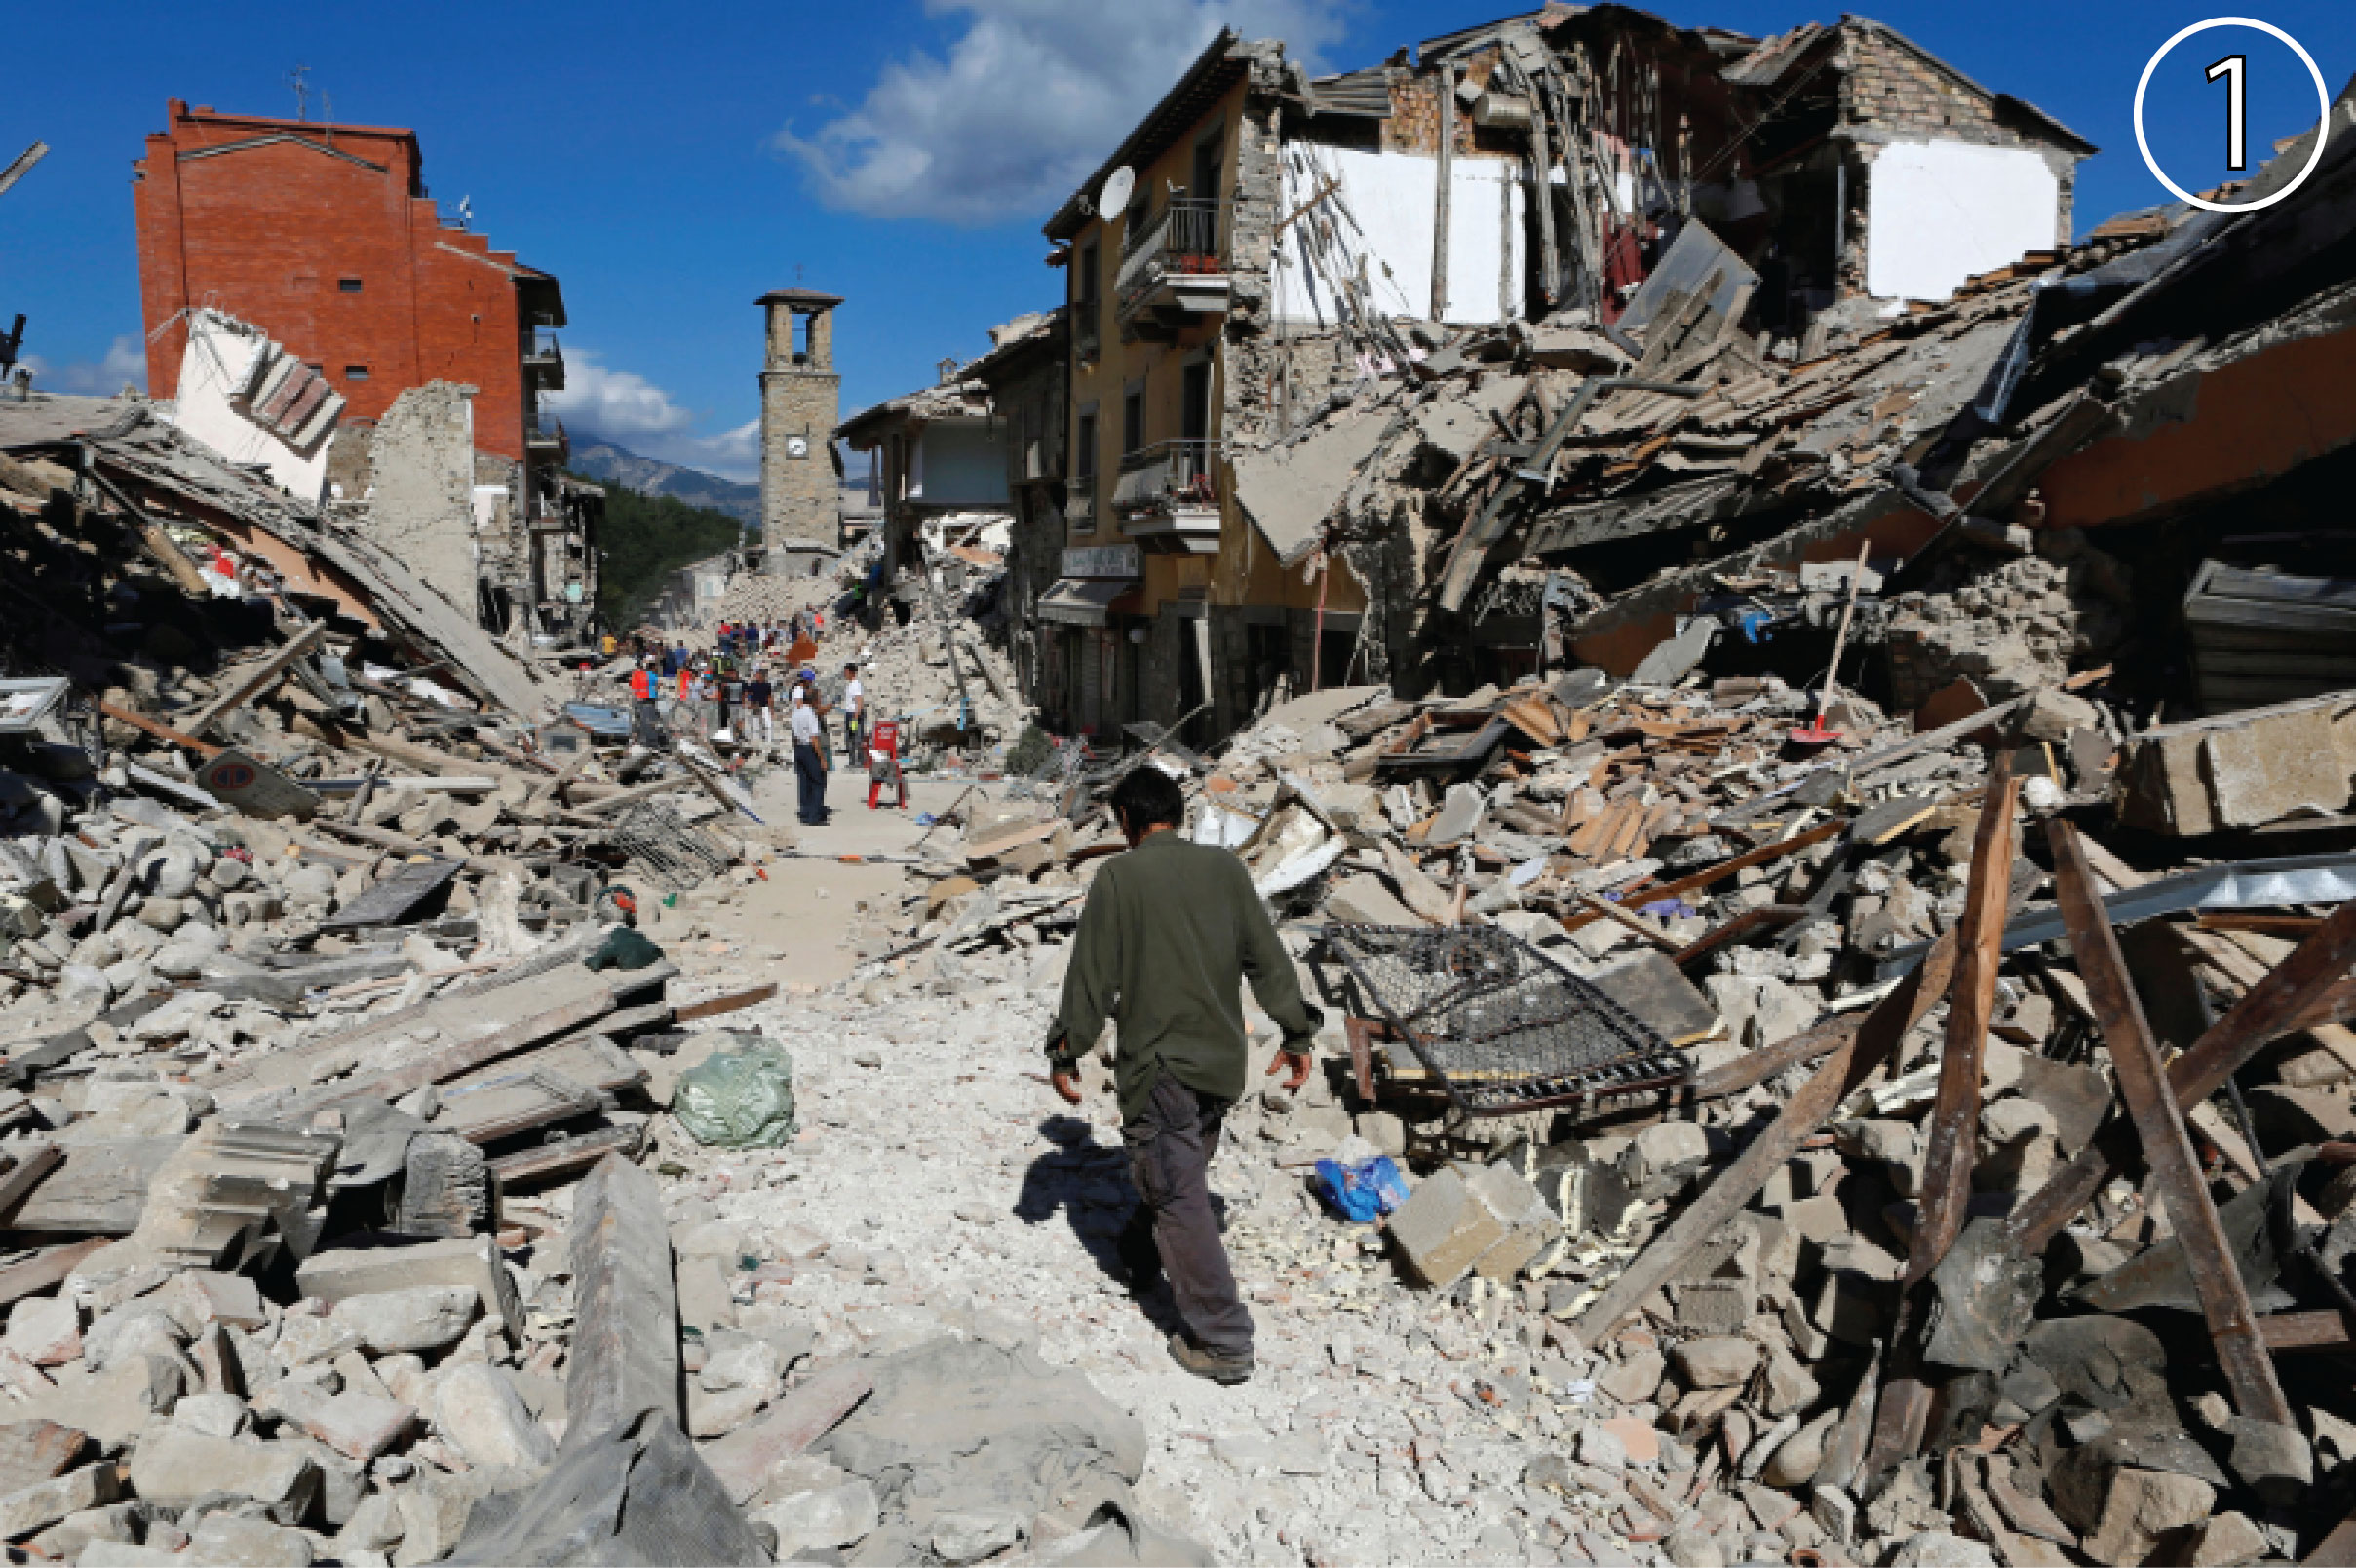 satellite mexico map with Nasa Radar Maps Reveal Massive Extent Of Amatrice Damage From Italy Earthquake 1271 on Carte Gouvernorat Gabes Tunisie together with royalsolarisloscabo together with Satellite Images Can Map Poverty moreover Nasa Radar Maps Reveal Massive Extent Of Amatrice Damage From Italy Earthquake 1271 furthermore Colorado Topographic Map.